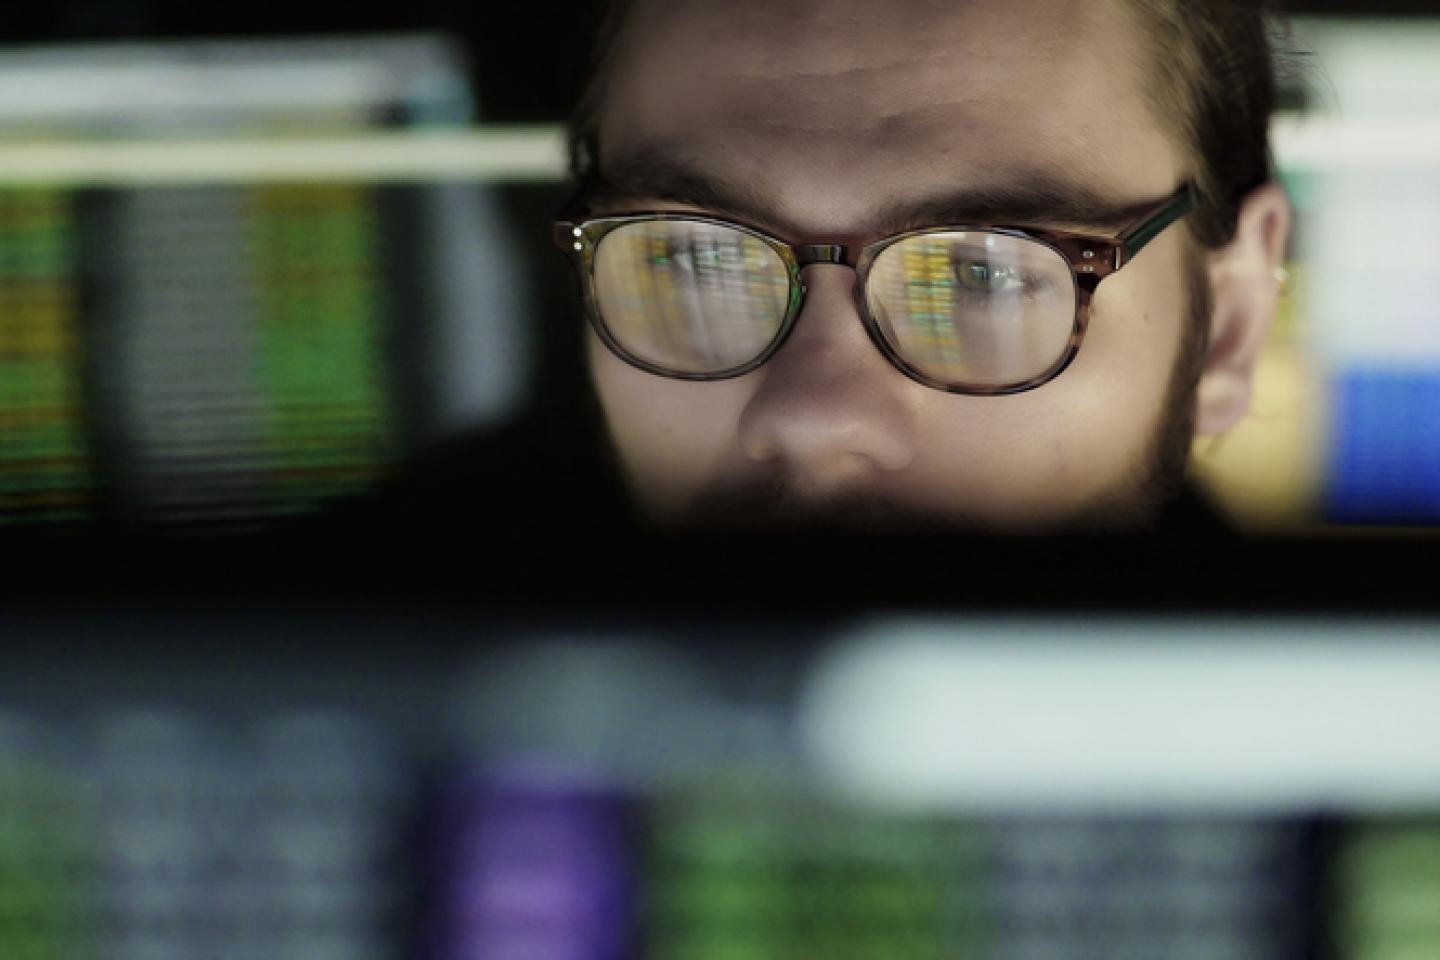 Man looking at Stock data